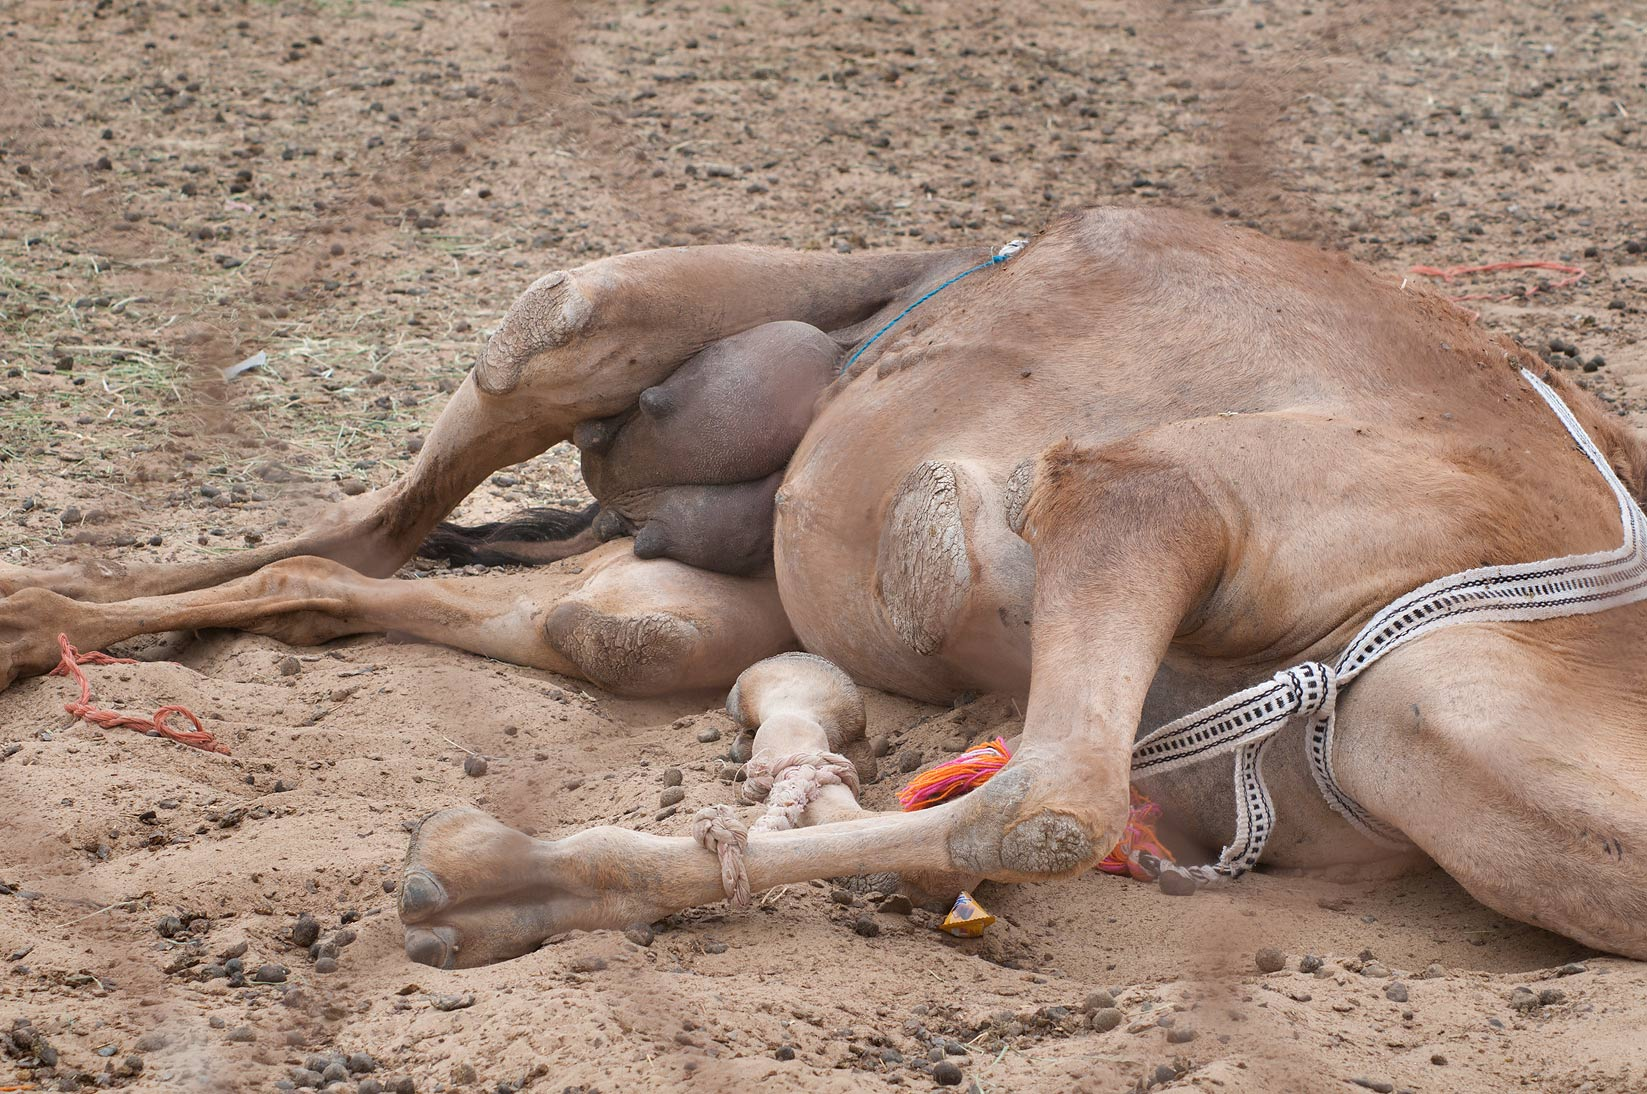 Camel's belly with a tough leathery pad and an...Wholesale Markets area. Doha, Qatar